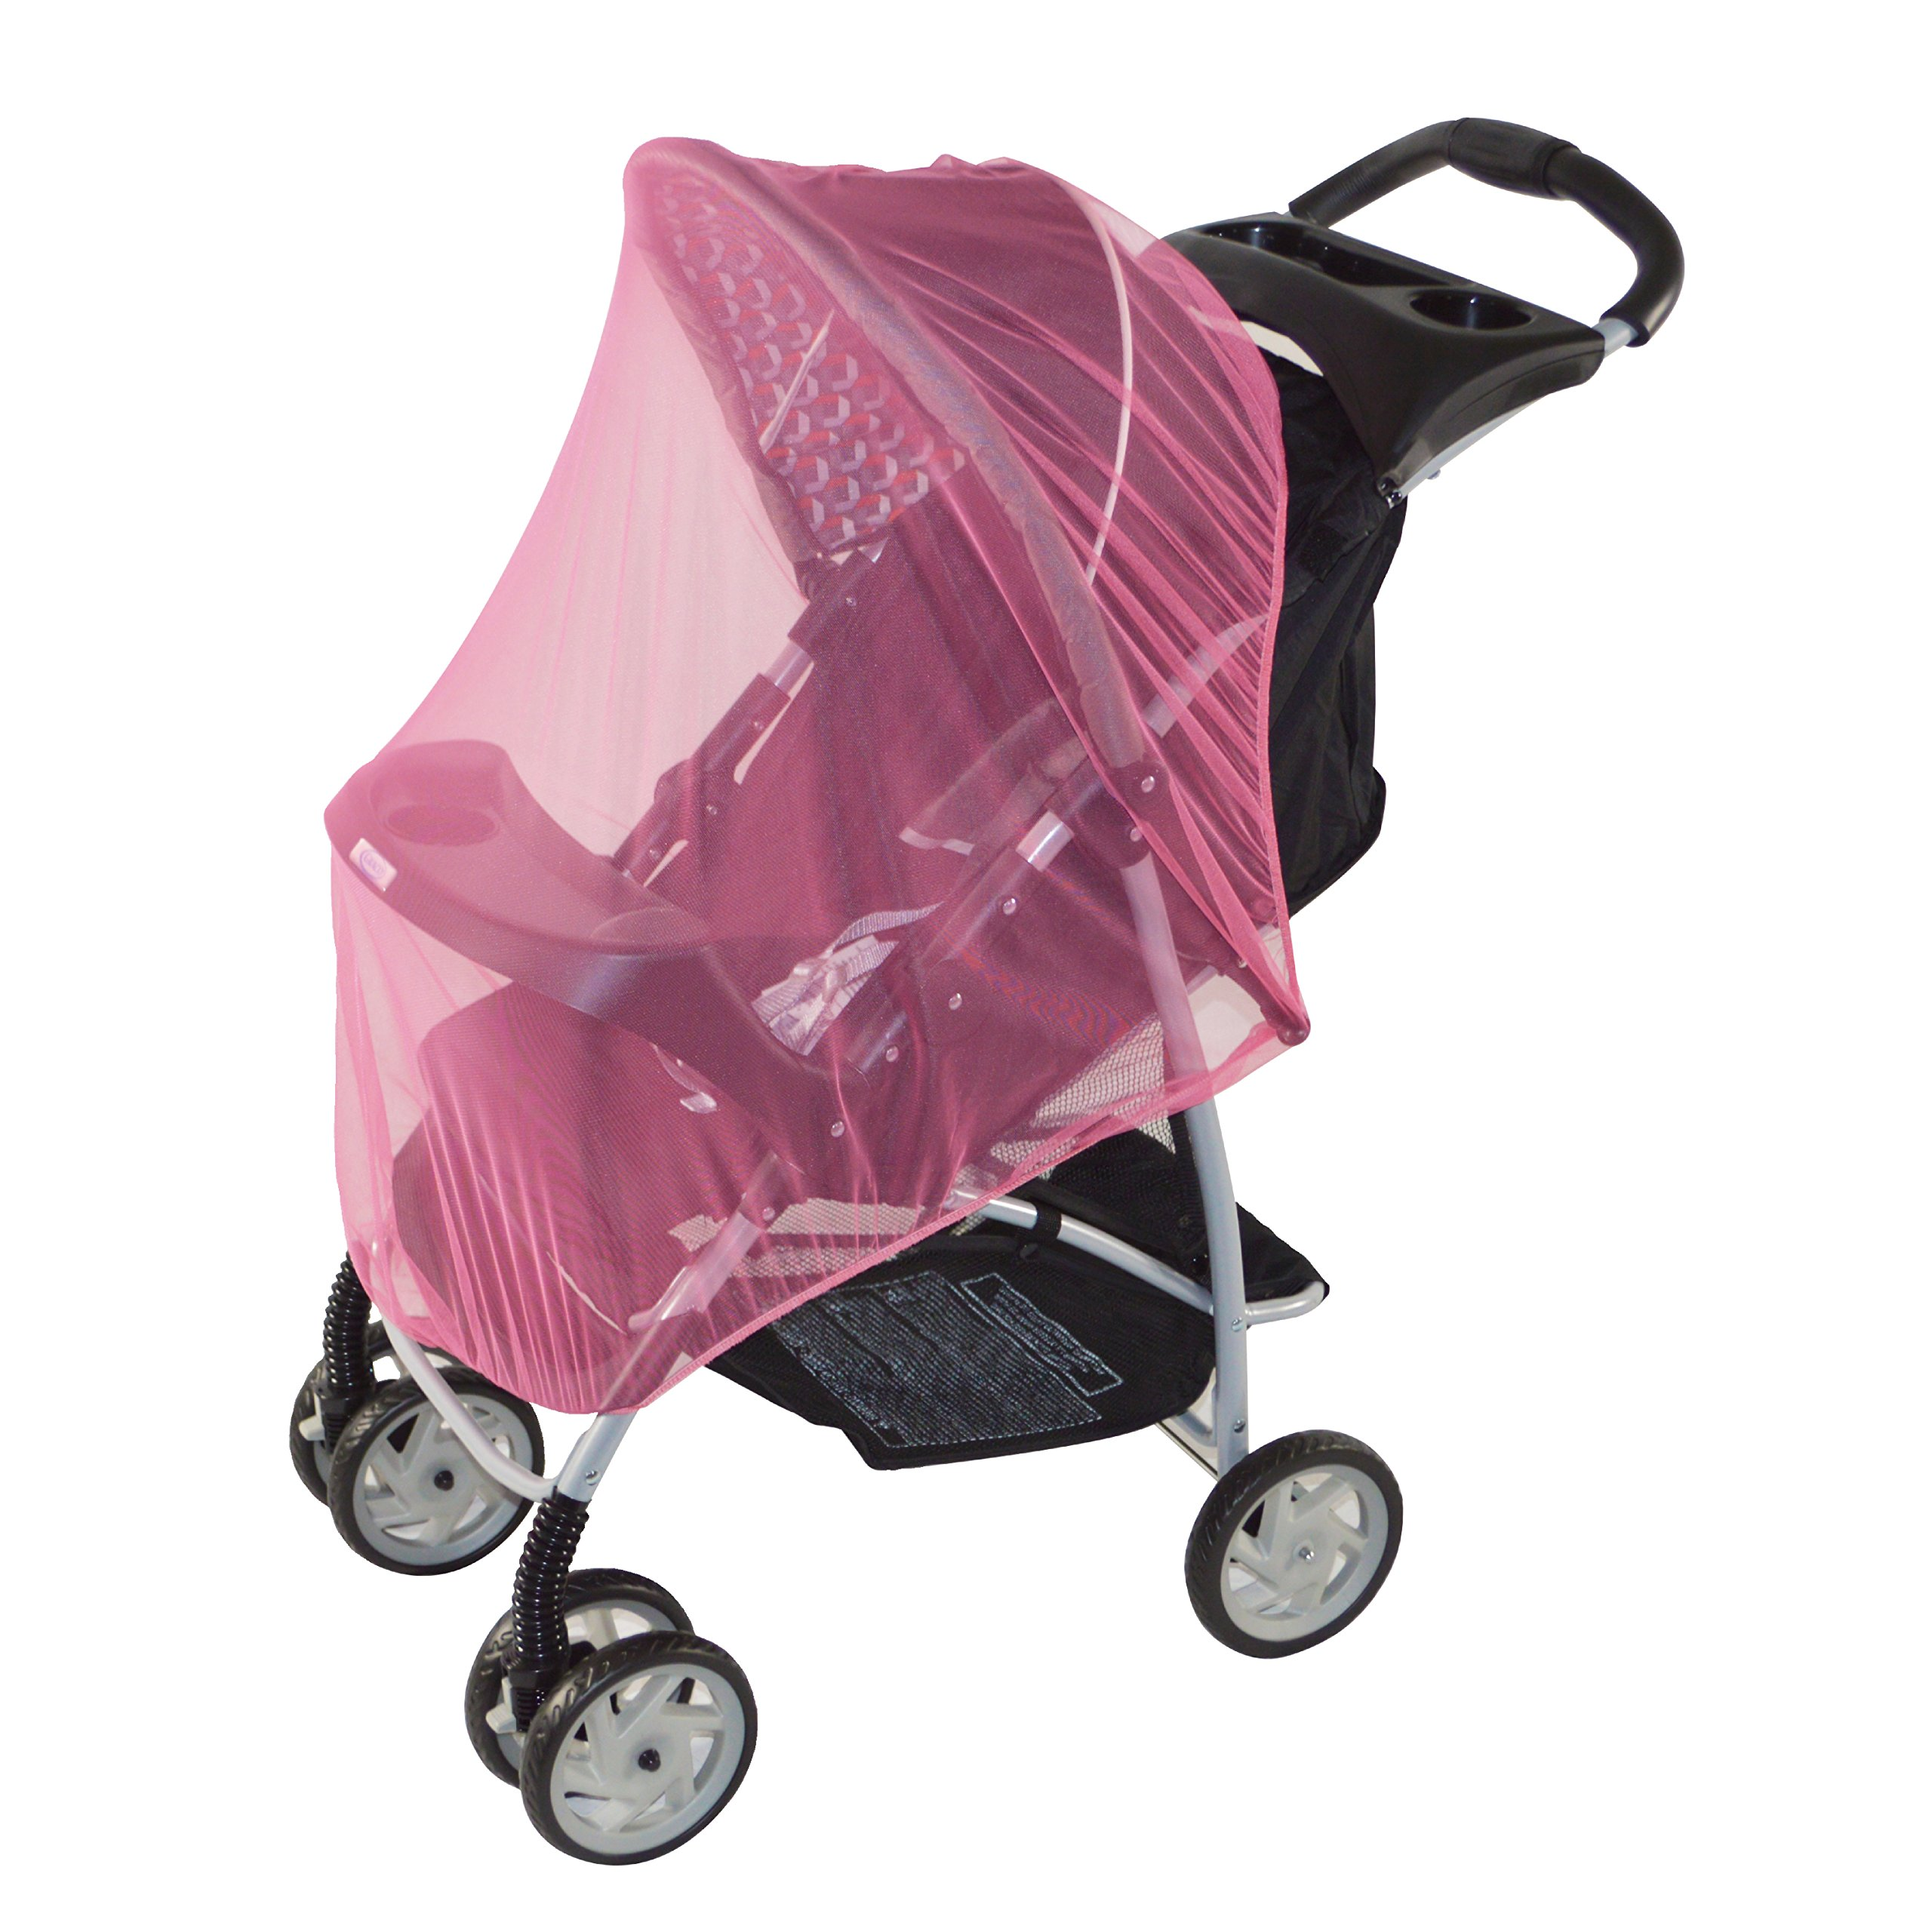 Amazon.com : Blue Mosquito Net for baby Strollers, Carriers, Car ...